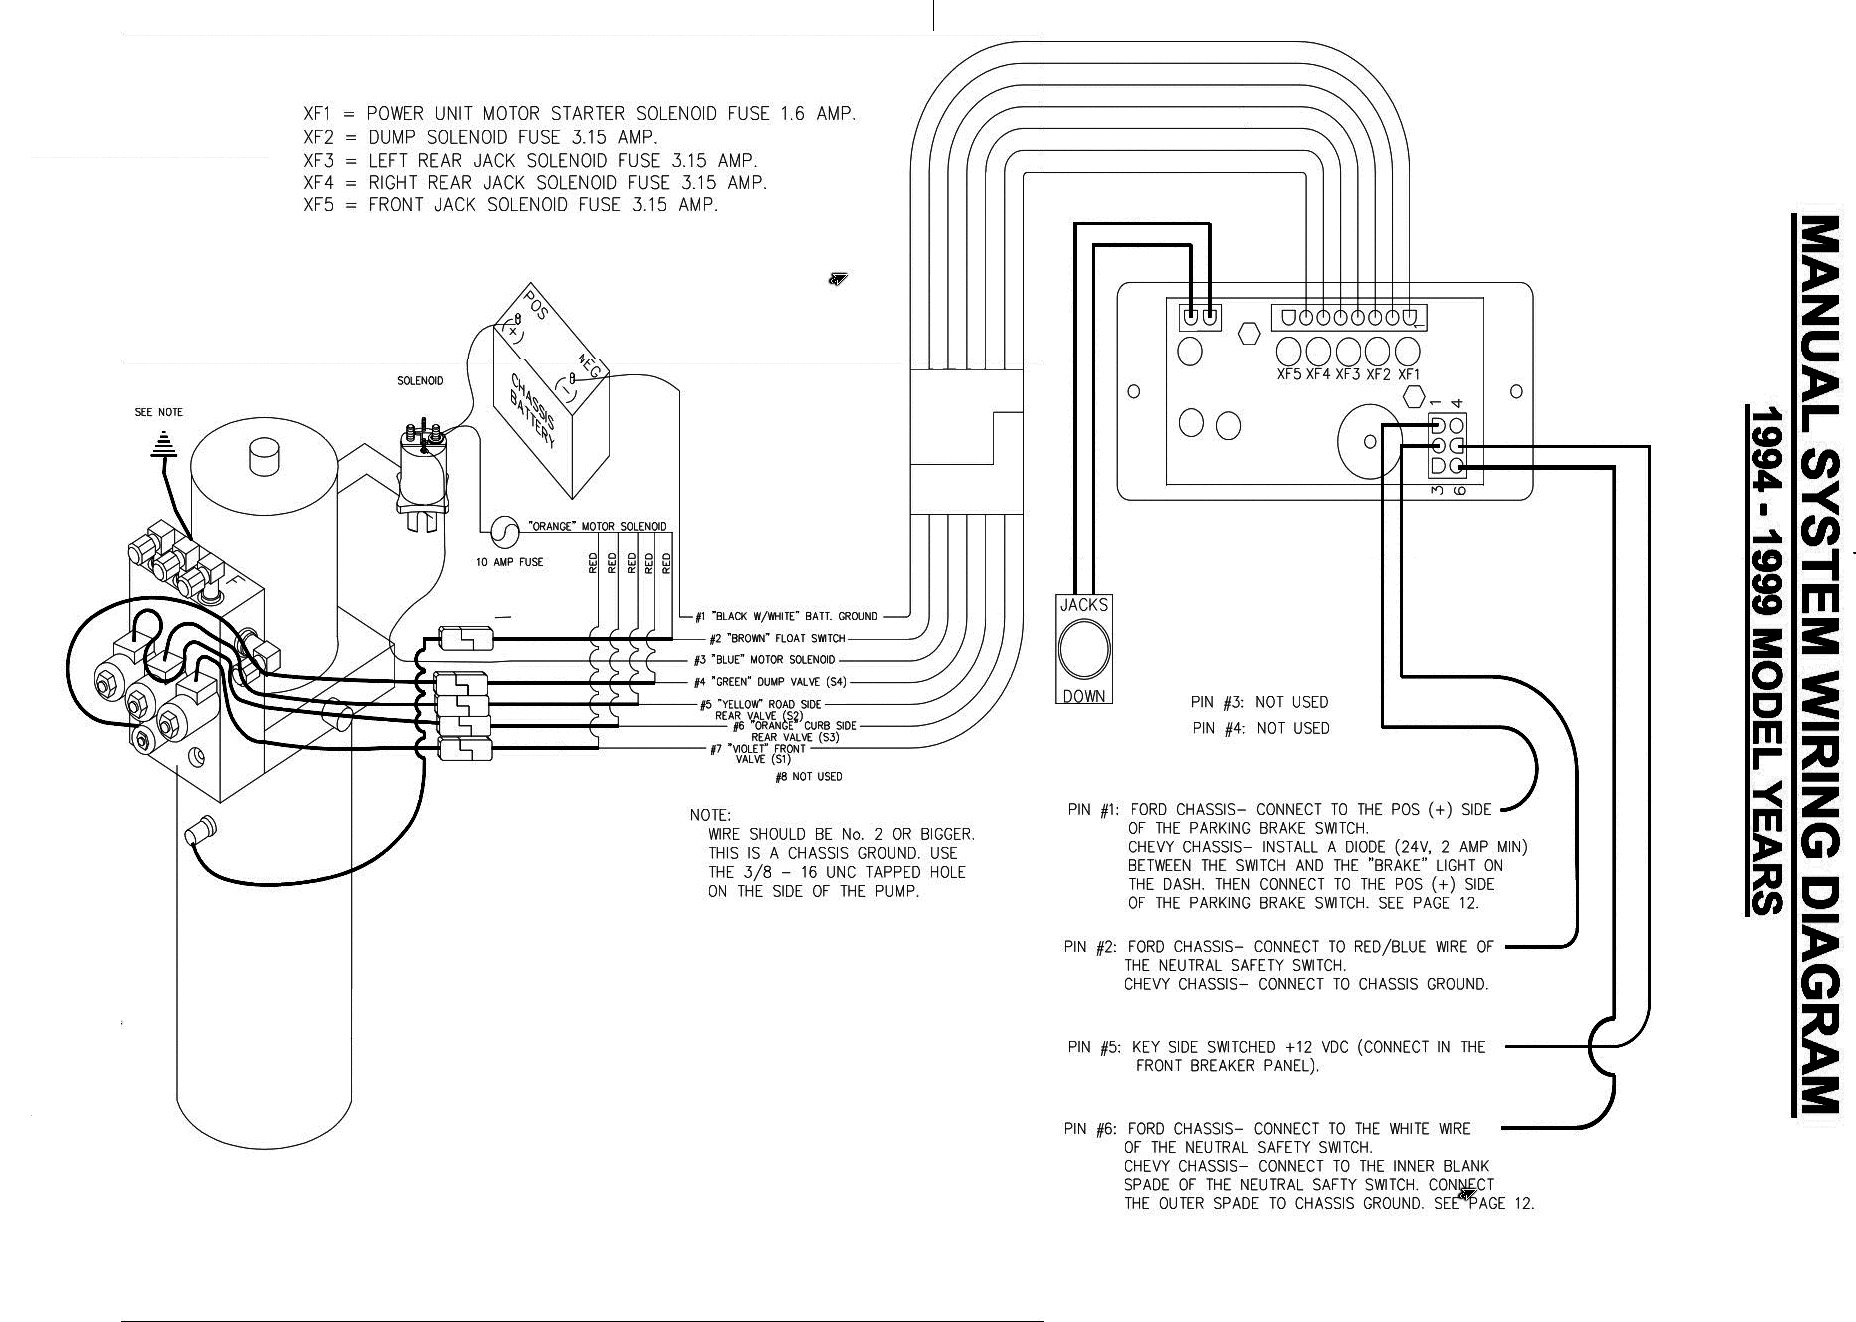 95 Bounder Wiring Diagram on 1991 Fleetwood Bounder Wiring Diagram